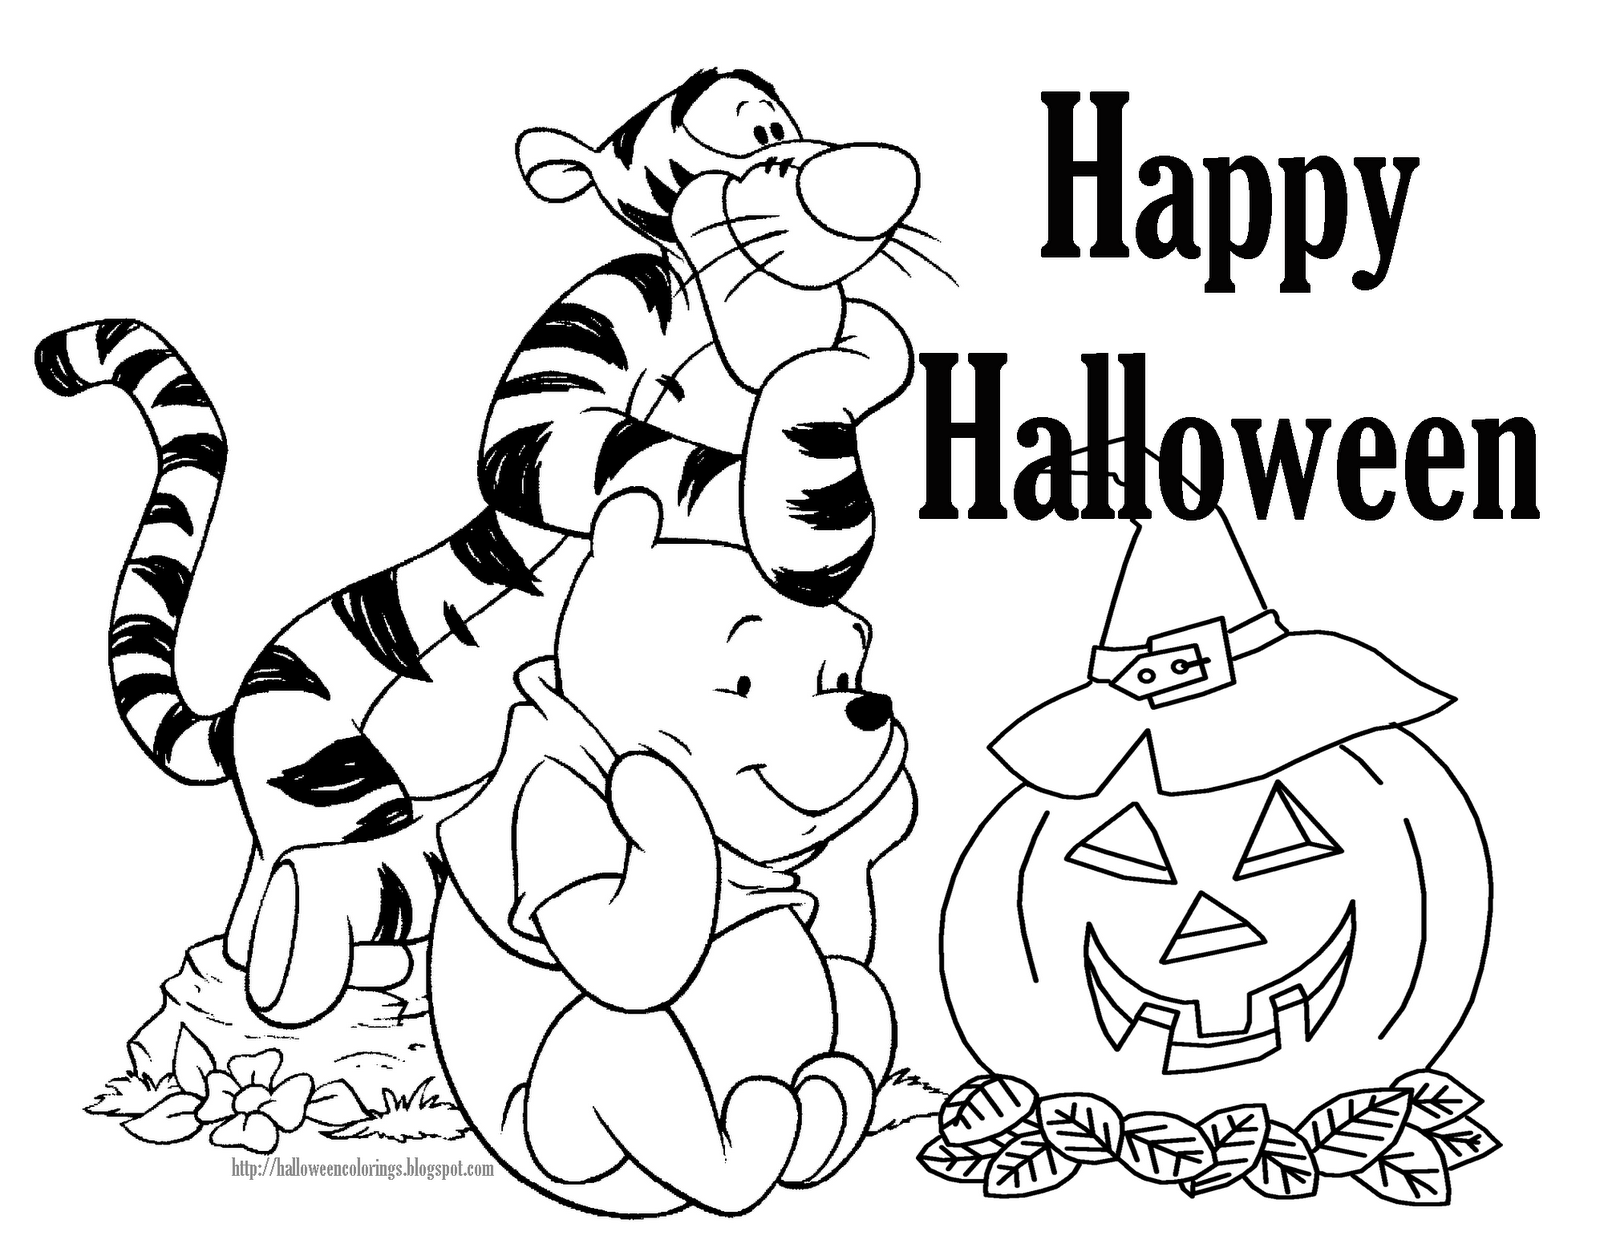 Halloween coloring pages free printable minnesota miranda for Halloween coloring pages for adults printables